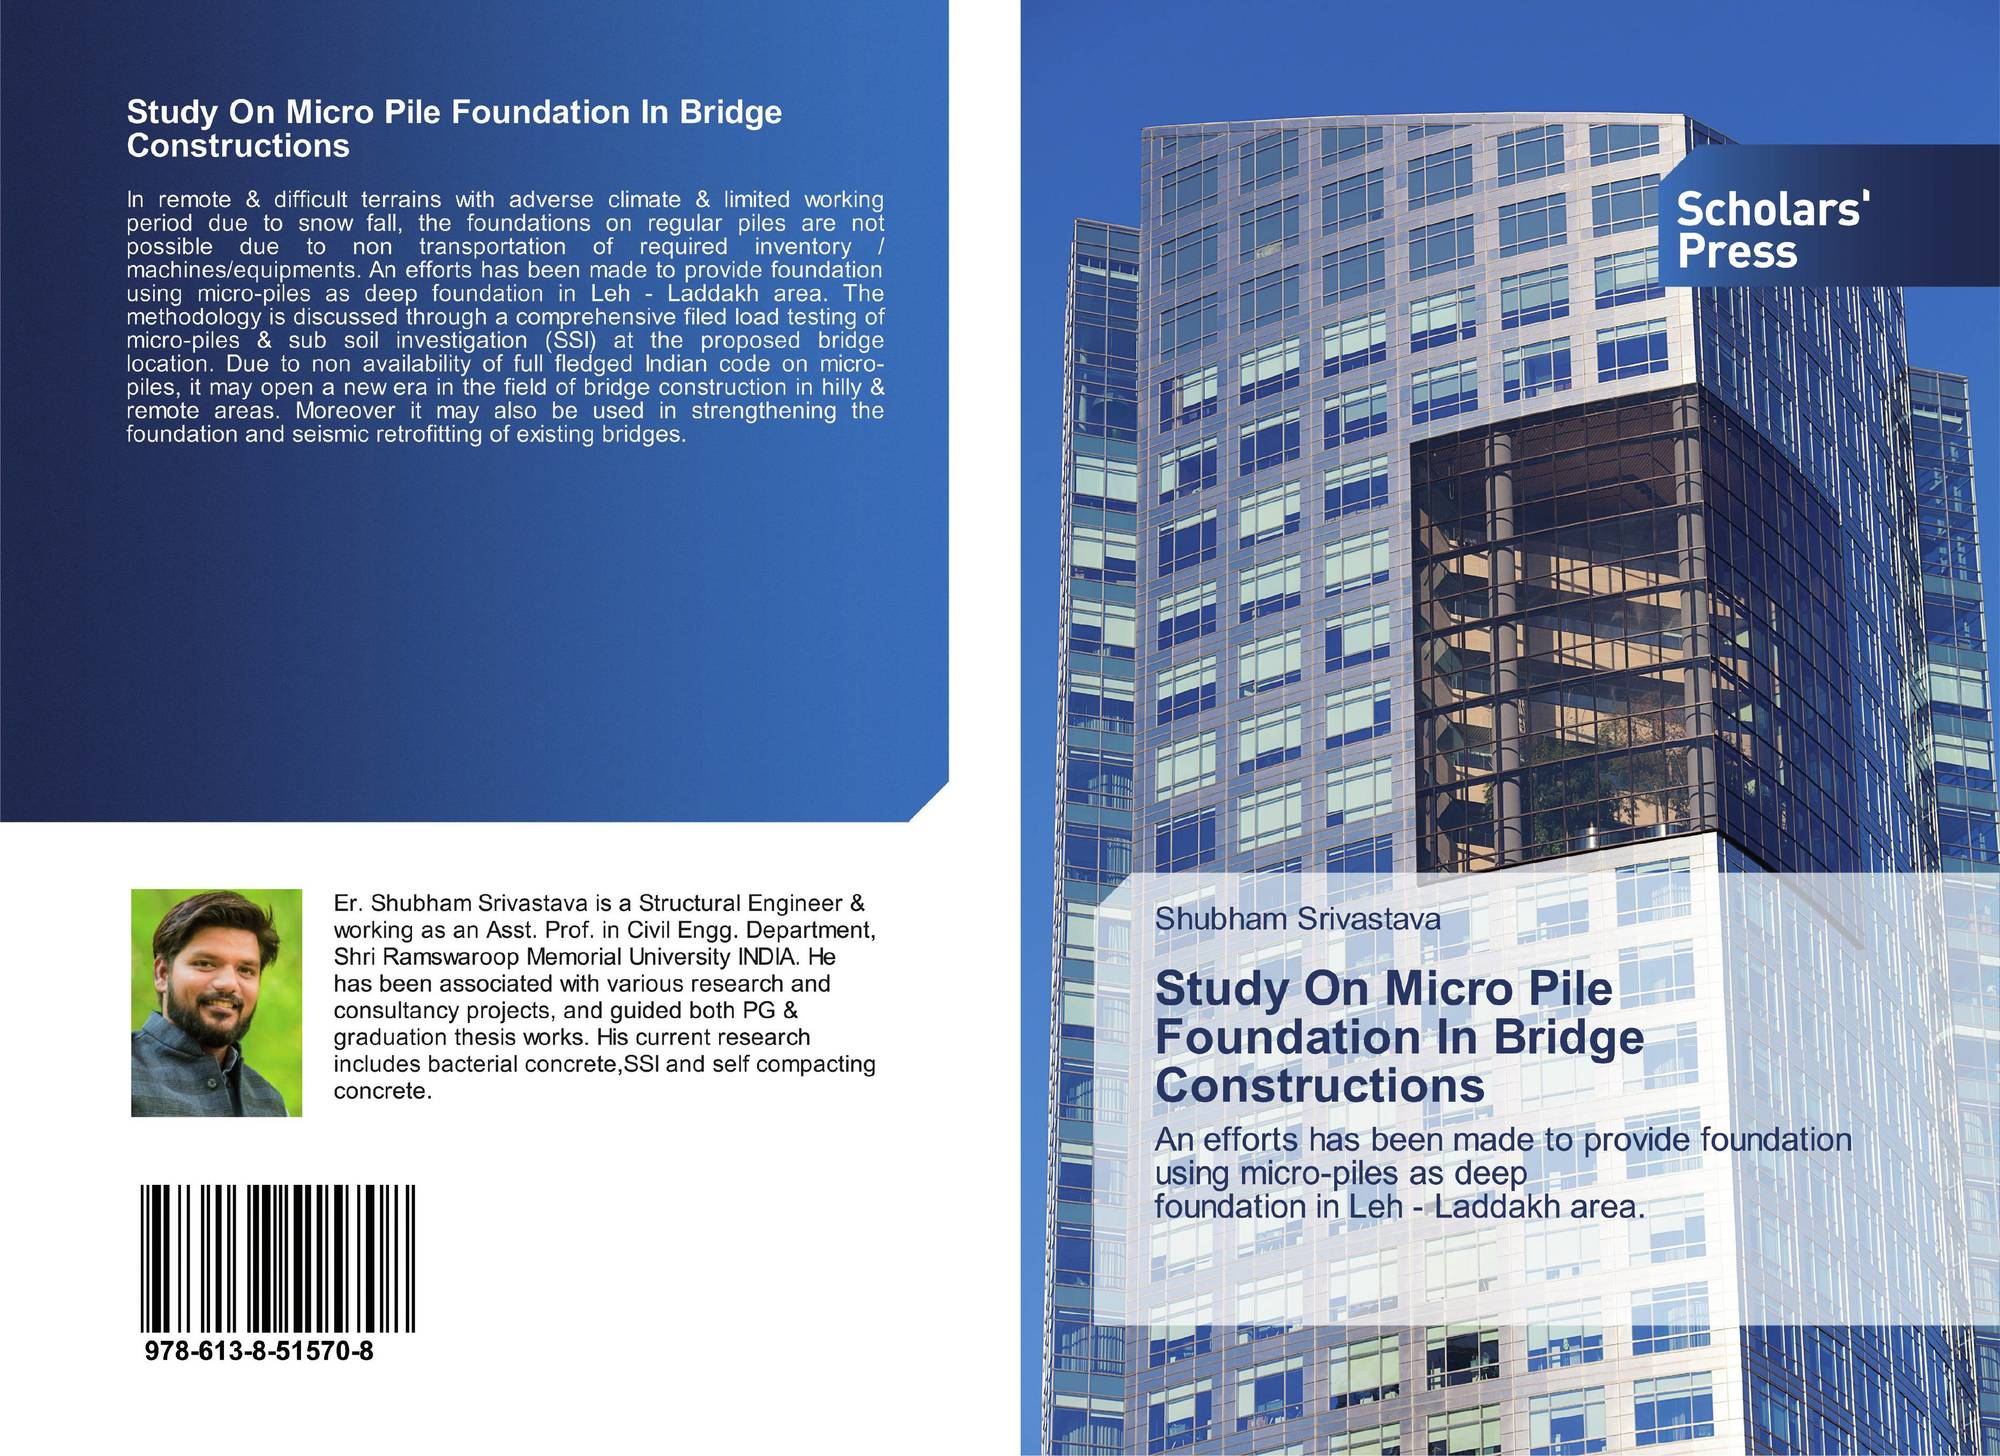 Study On Micro Pile Foundation In Bridge Constructions, 978-613-8